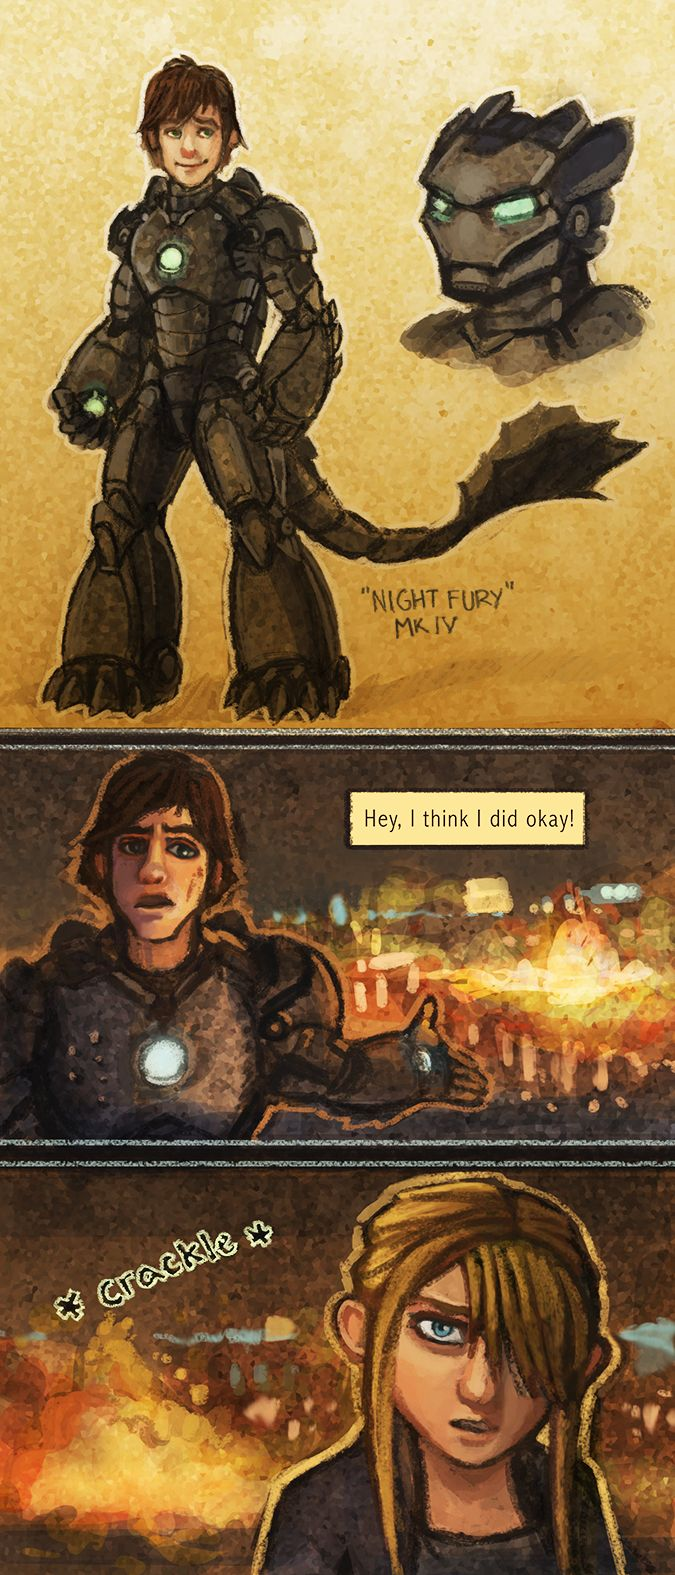 tipsybarracuda: randommakings: thegentlehoneybee: People were asking to see Hiccup's suit, so here is his take on the iron man design. With a bonus comic thrown in, because I loved this scene in Iron Man 2. Part of the now ridiculously out of control 'rise of the brave tangled wreck-it dragons avengers' crossover. For the rest of the verse, check here. If you have any requests, let me know and I will try to get to them. Thanks! omfg rehfgsdfjyfhgmb.j,mnlk.jnk.hfthrfghcg